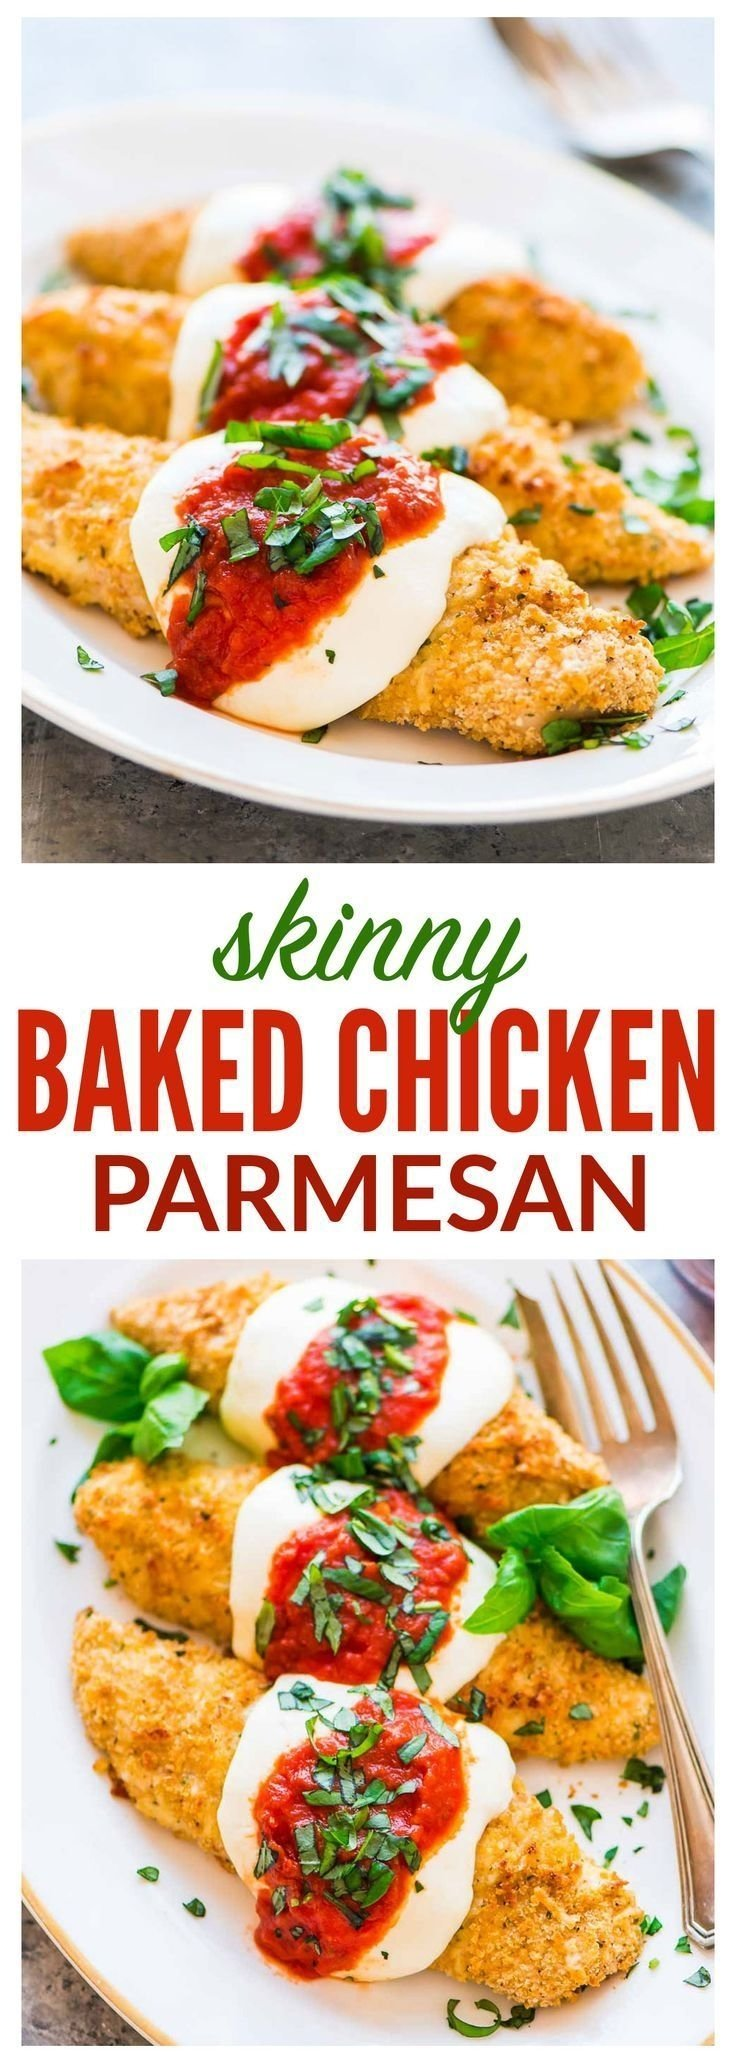 10 Fabulous Easy Healthy Family Dinner Ideas 822 best chicken breast recipes images on pinterest chicken 2021